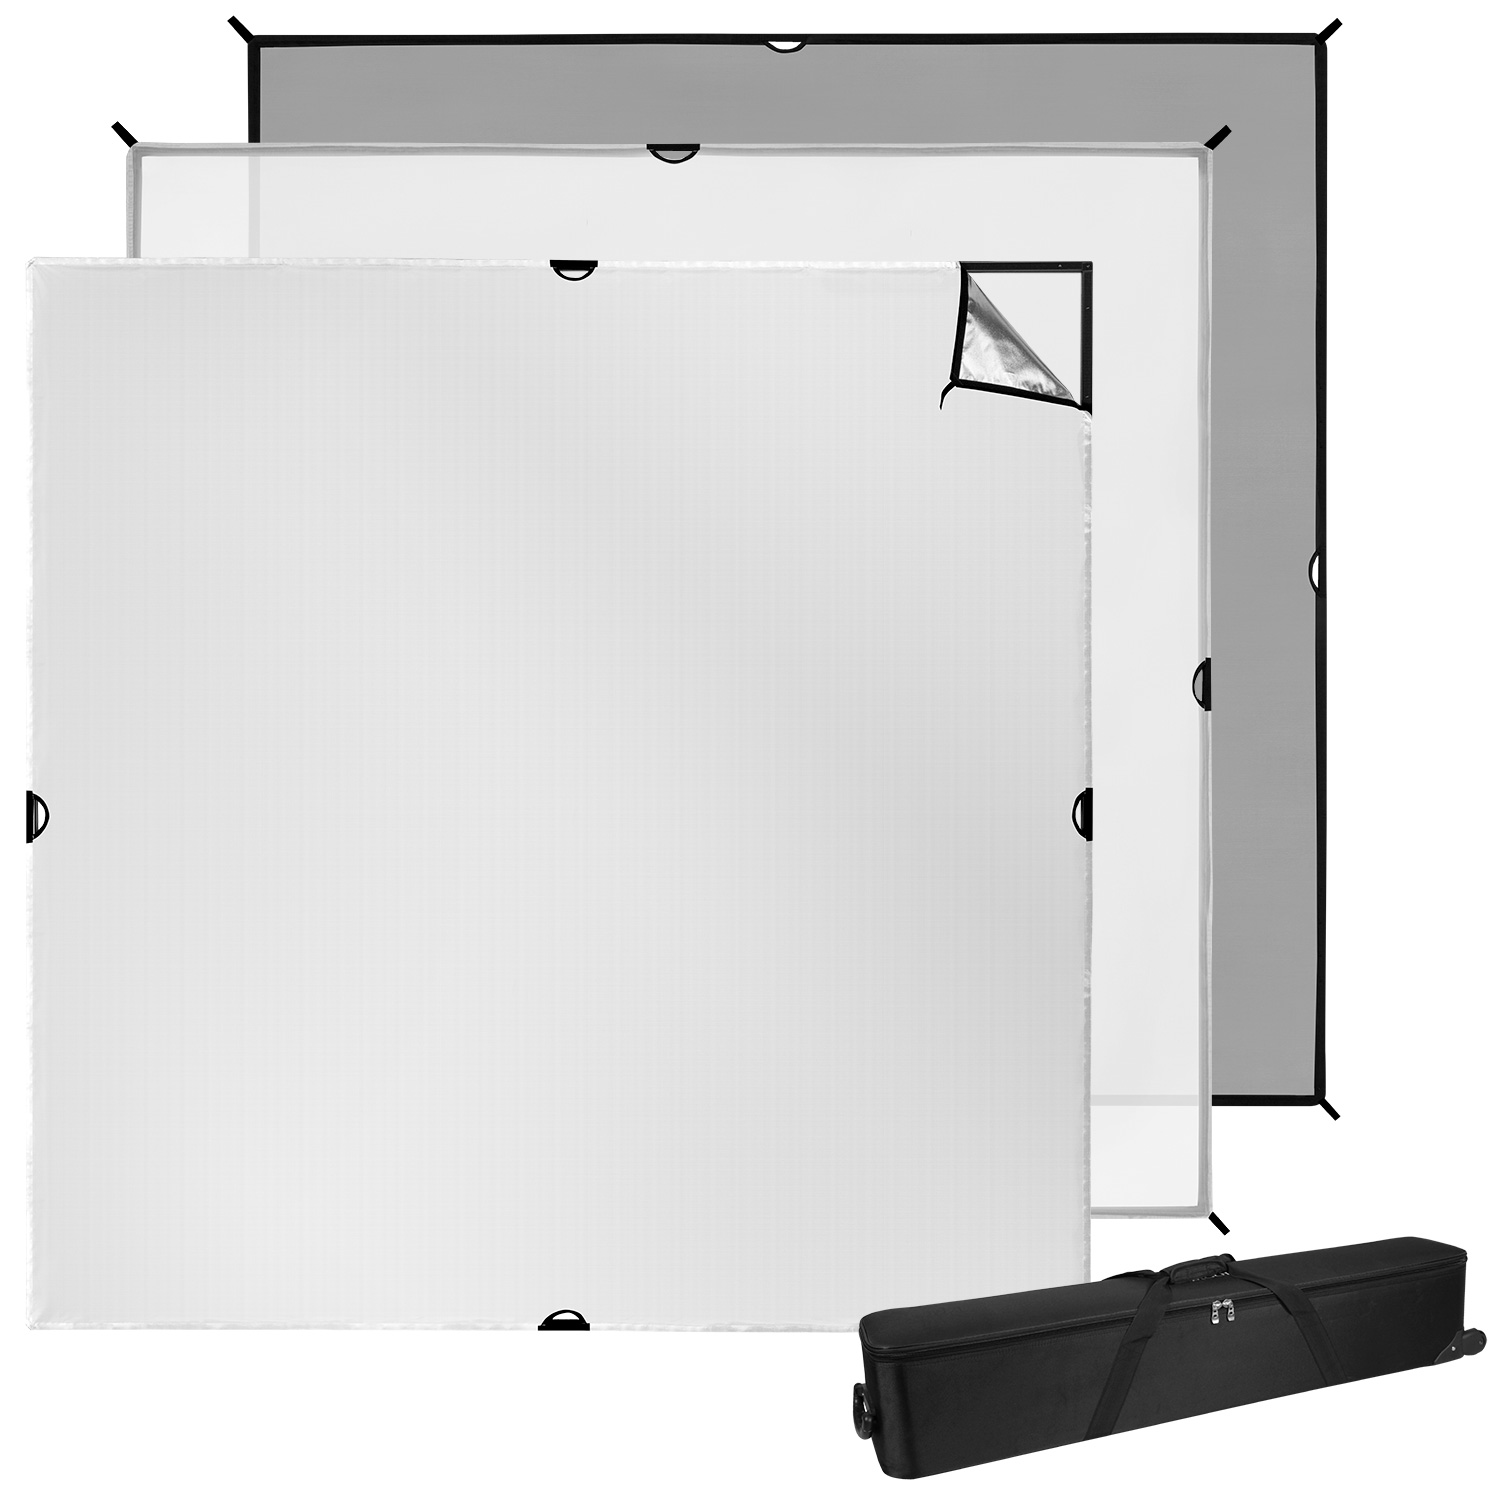 Scrim Jim Cine Video Kit (8' x 8')